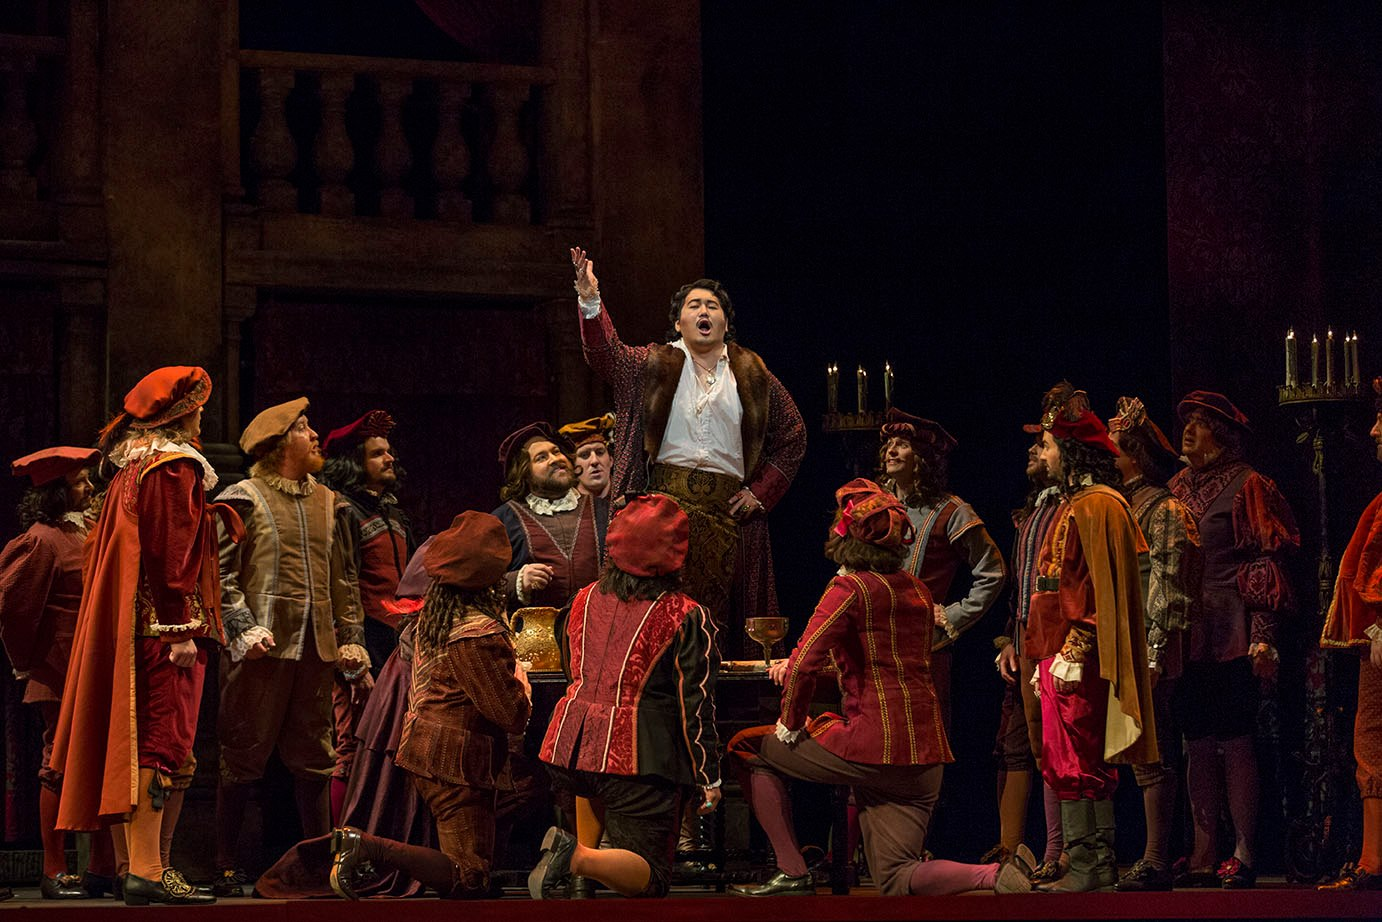 uploads/rigoletto-austin-opera-2019-photographer-unidentified/75348904_10157425419858859_689834213741953024_o.jpg